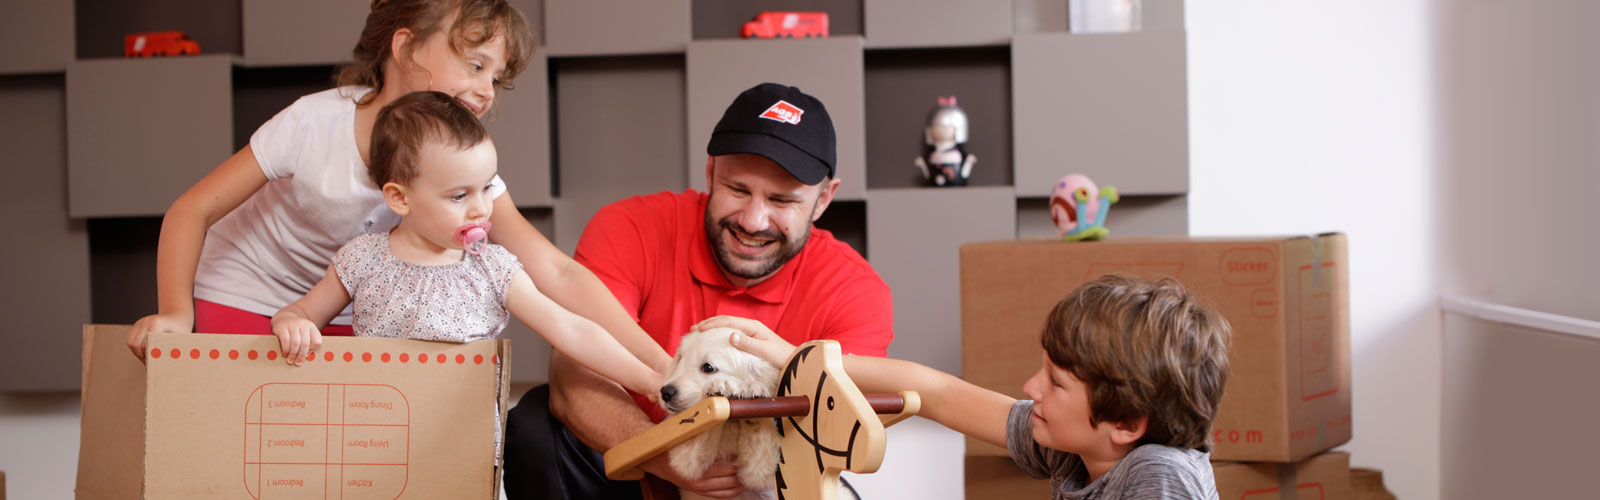 AGS Movers staff member petting dog with kids.